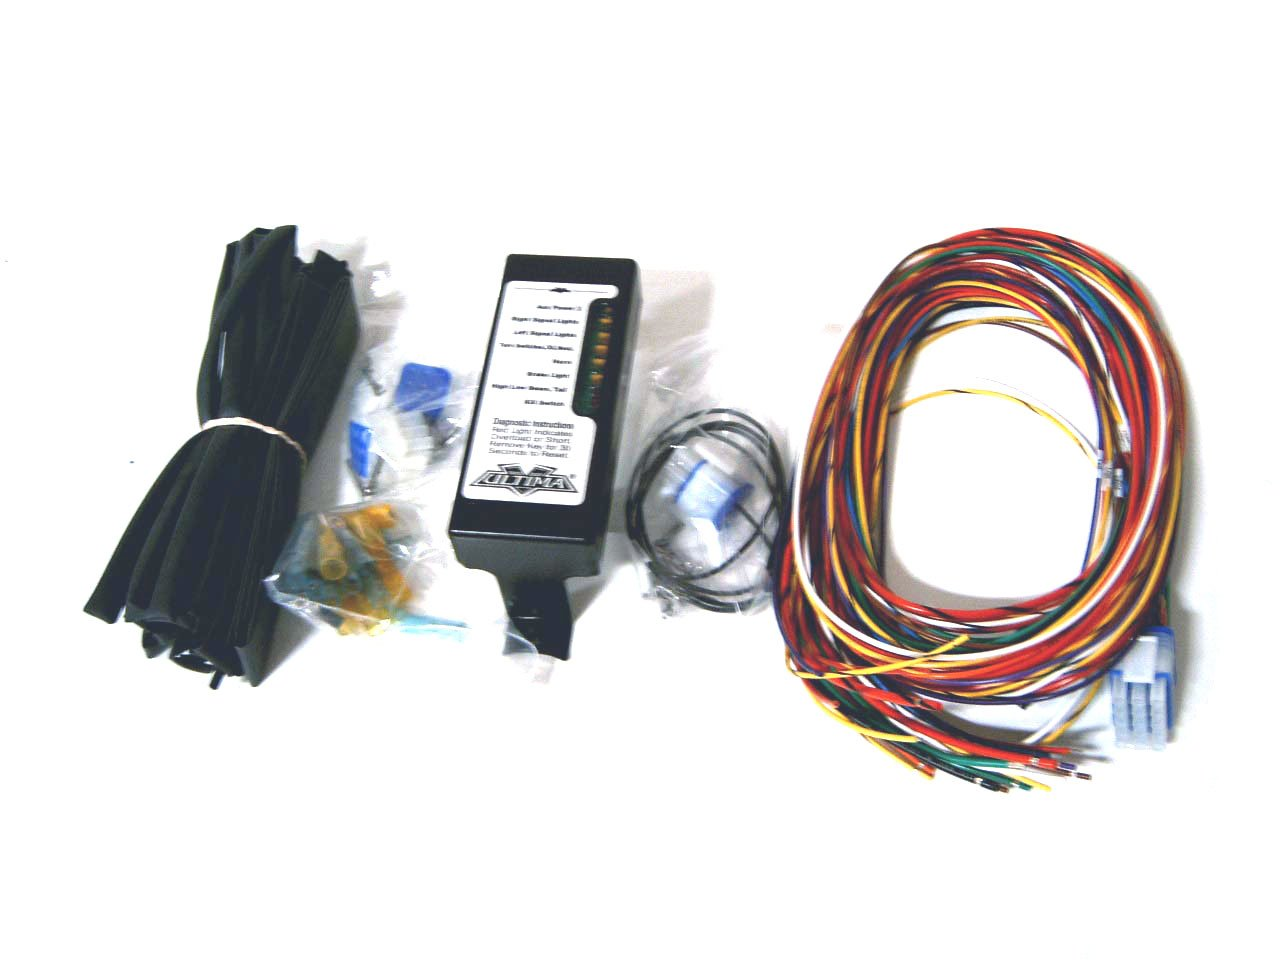 61DV2Bq5%2BHL._SL1280_ amazon com ultima complete wiring harness kit for harley davidson universal wiring harness kits at mifinder.co